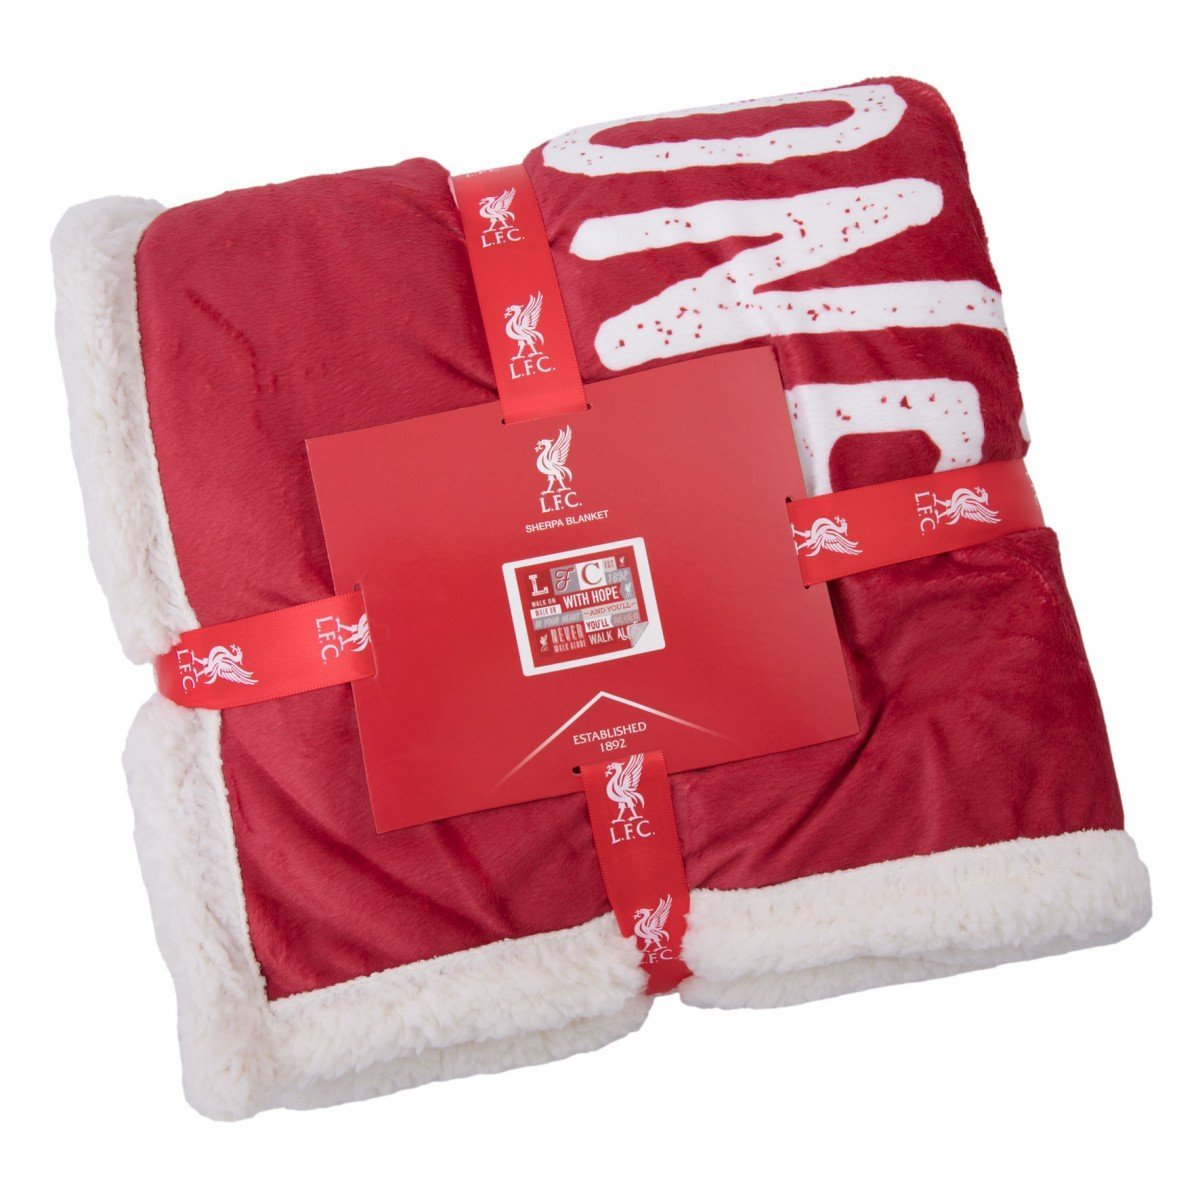 Liverpool FC Fleece Sherpa Blanket - Official Club Product